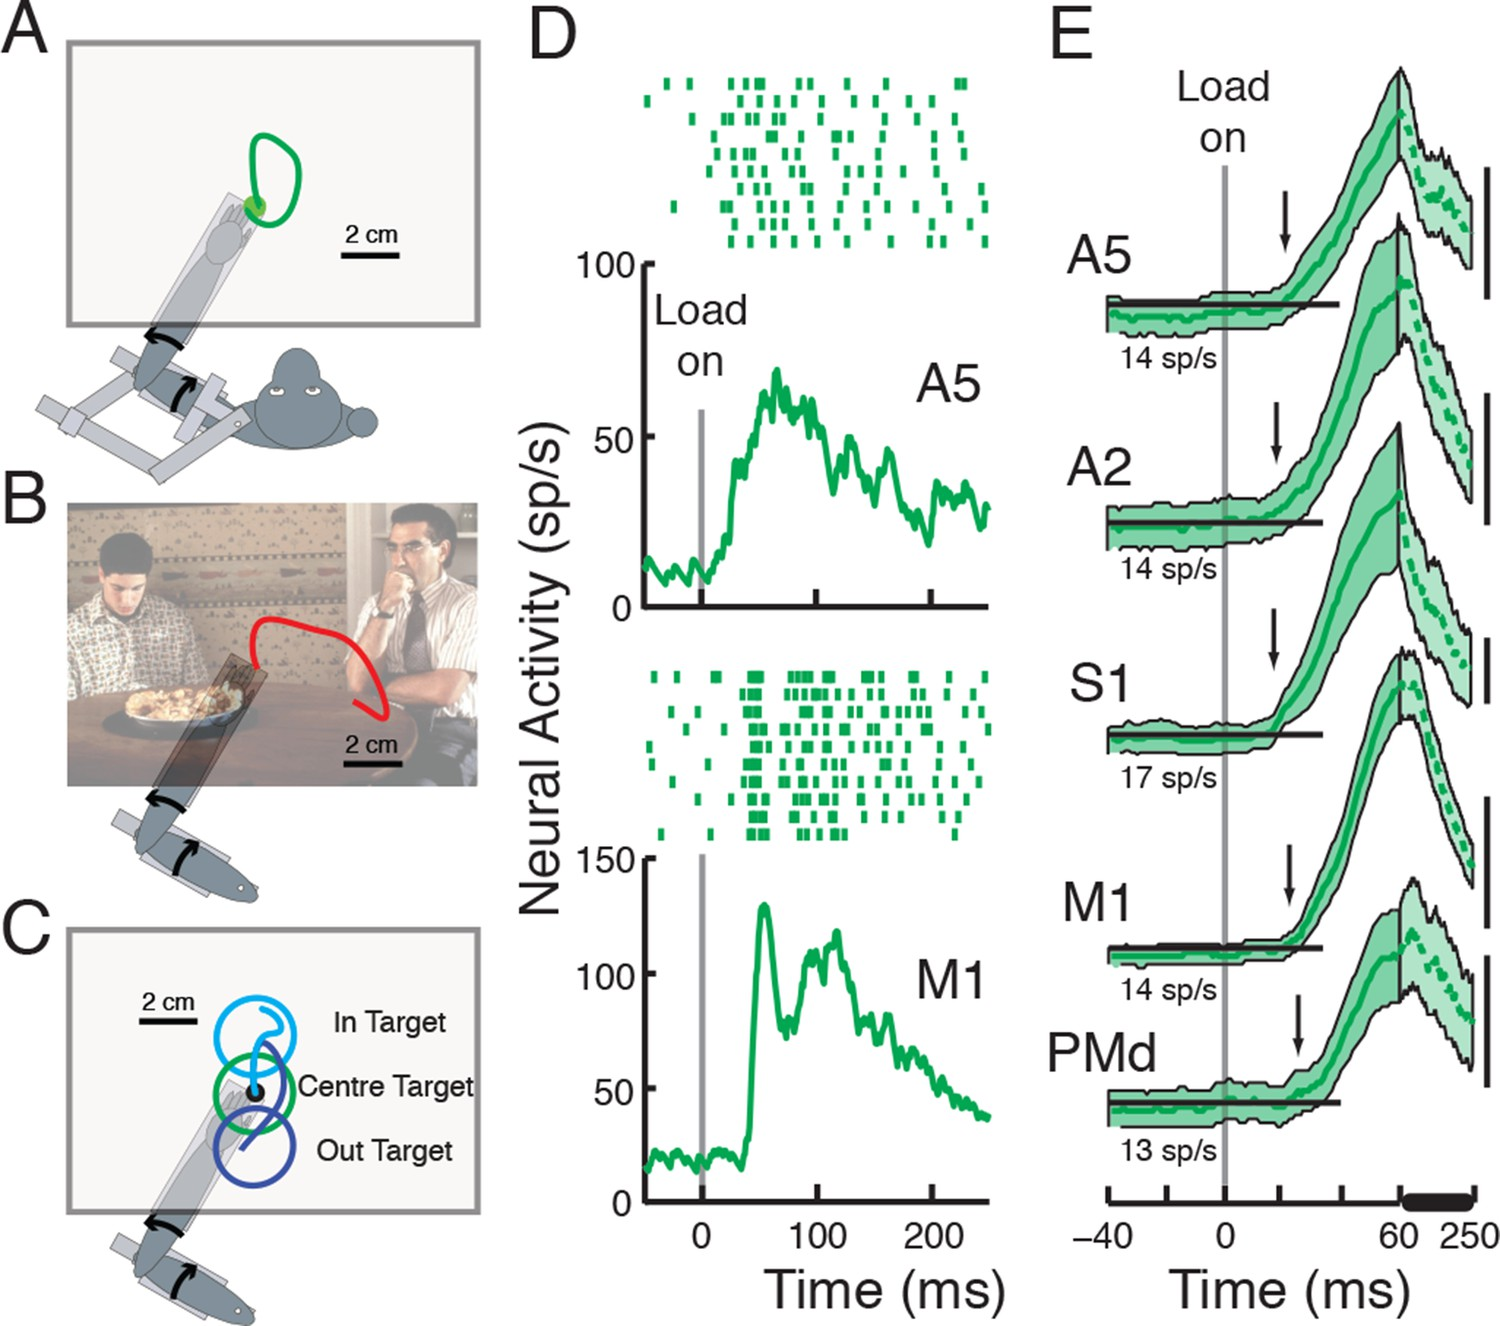 Distributed Task Specific Processing Of Somatosensory Feedback For Dc Wiring Diagram Atlas Point Motor Behavioral Tasks And Perturbation Responses Across Cortical Areas